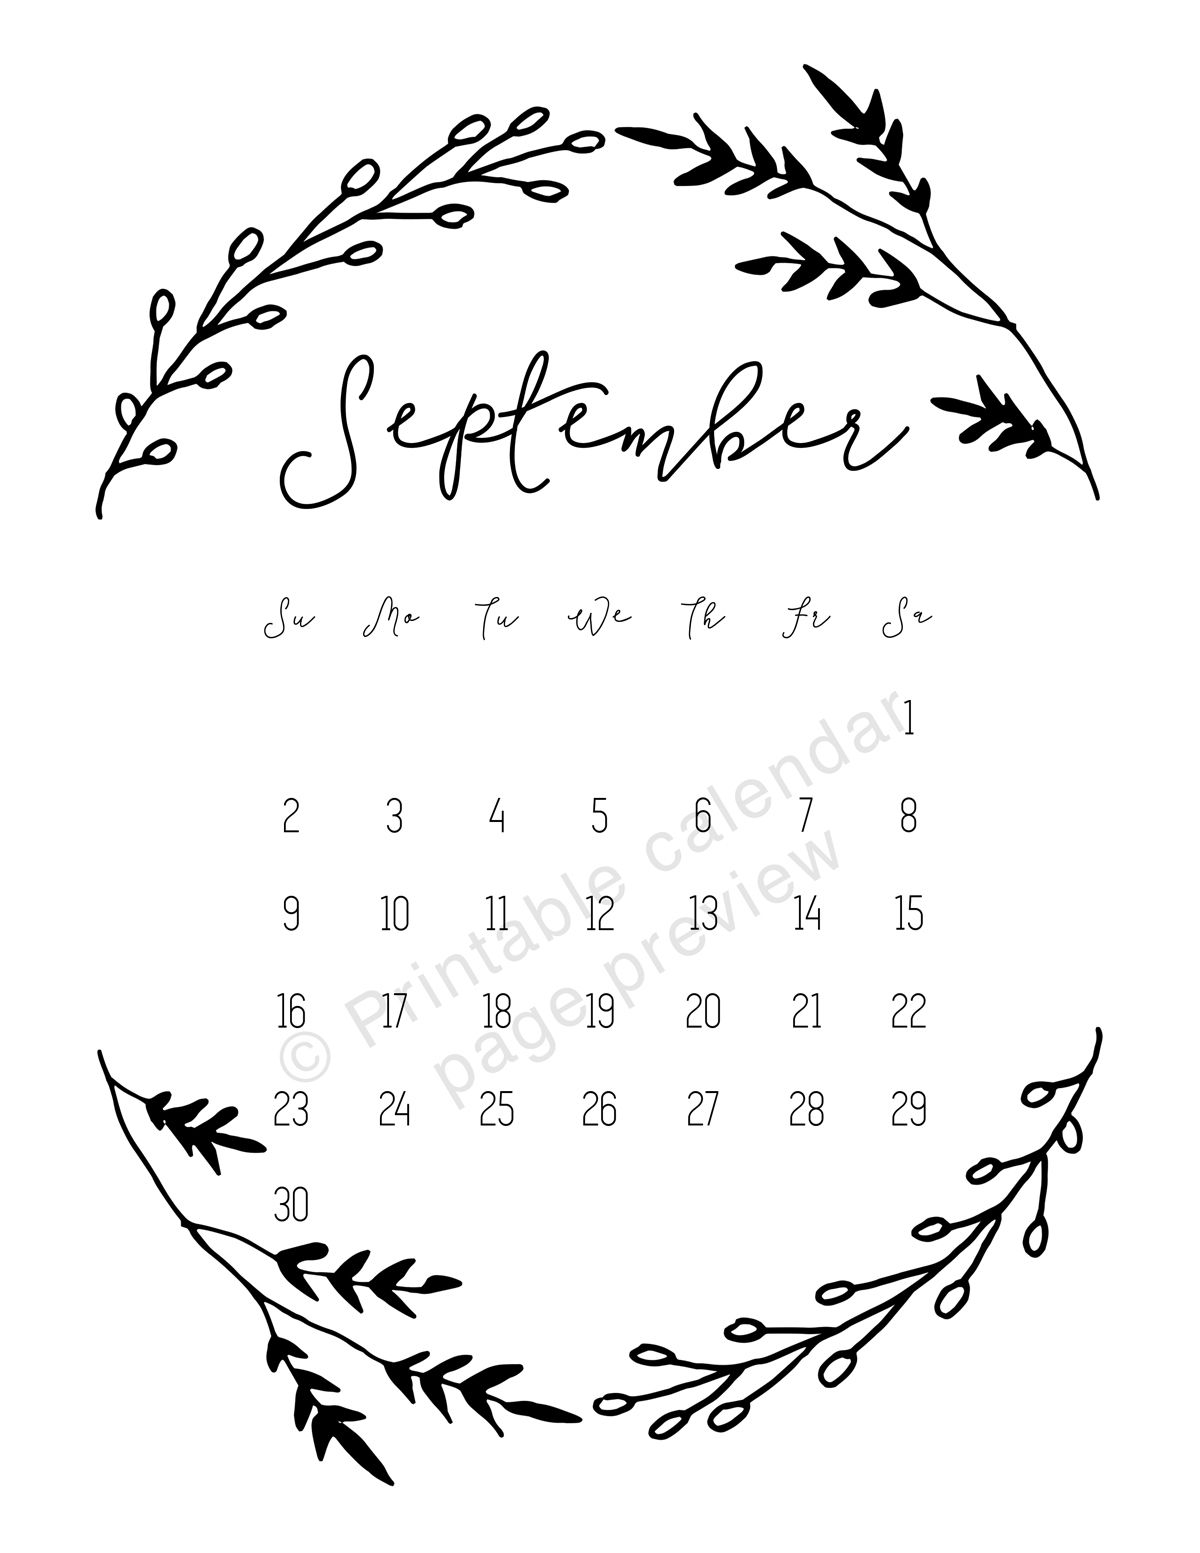 september 2018 calendar page preview from the printable calendar 2018 monthly calendar 2018 12